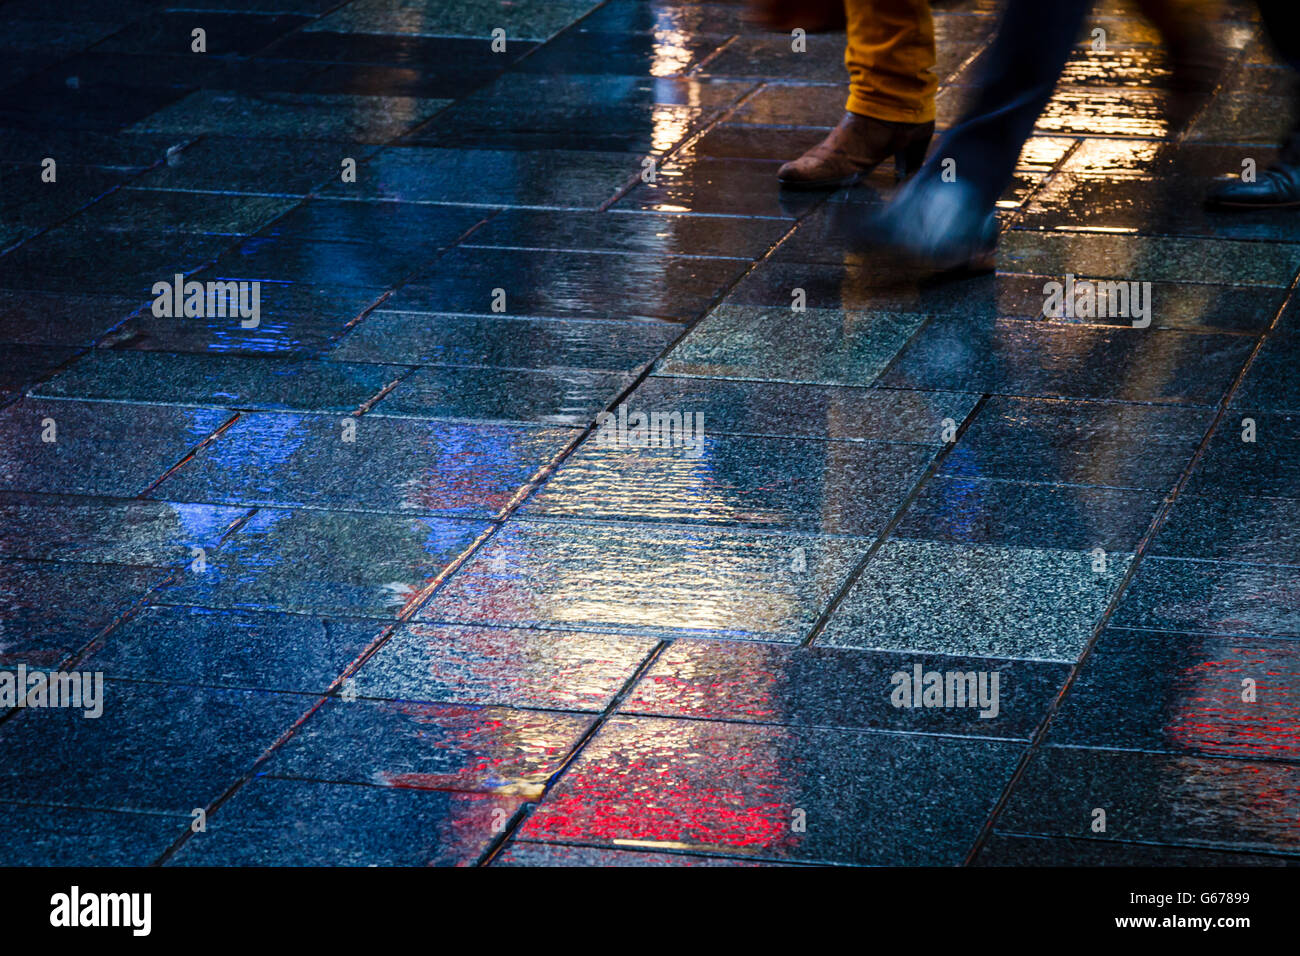 Step into the picture in the rain - Stock Image